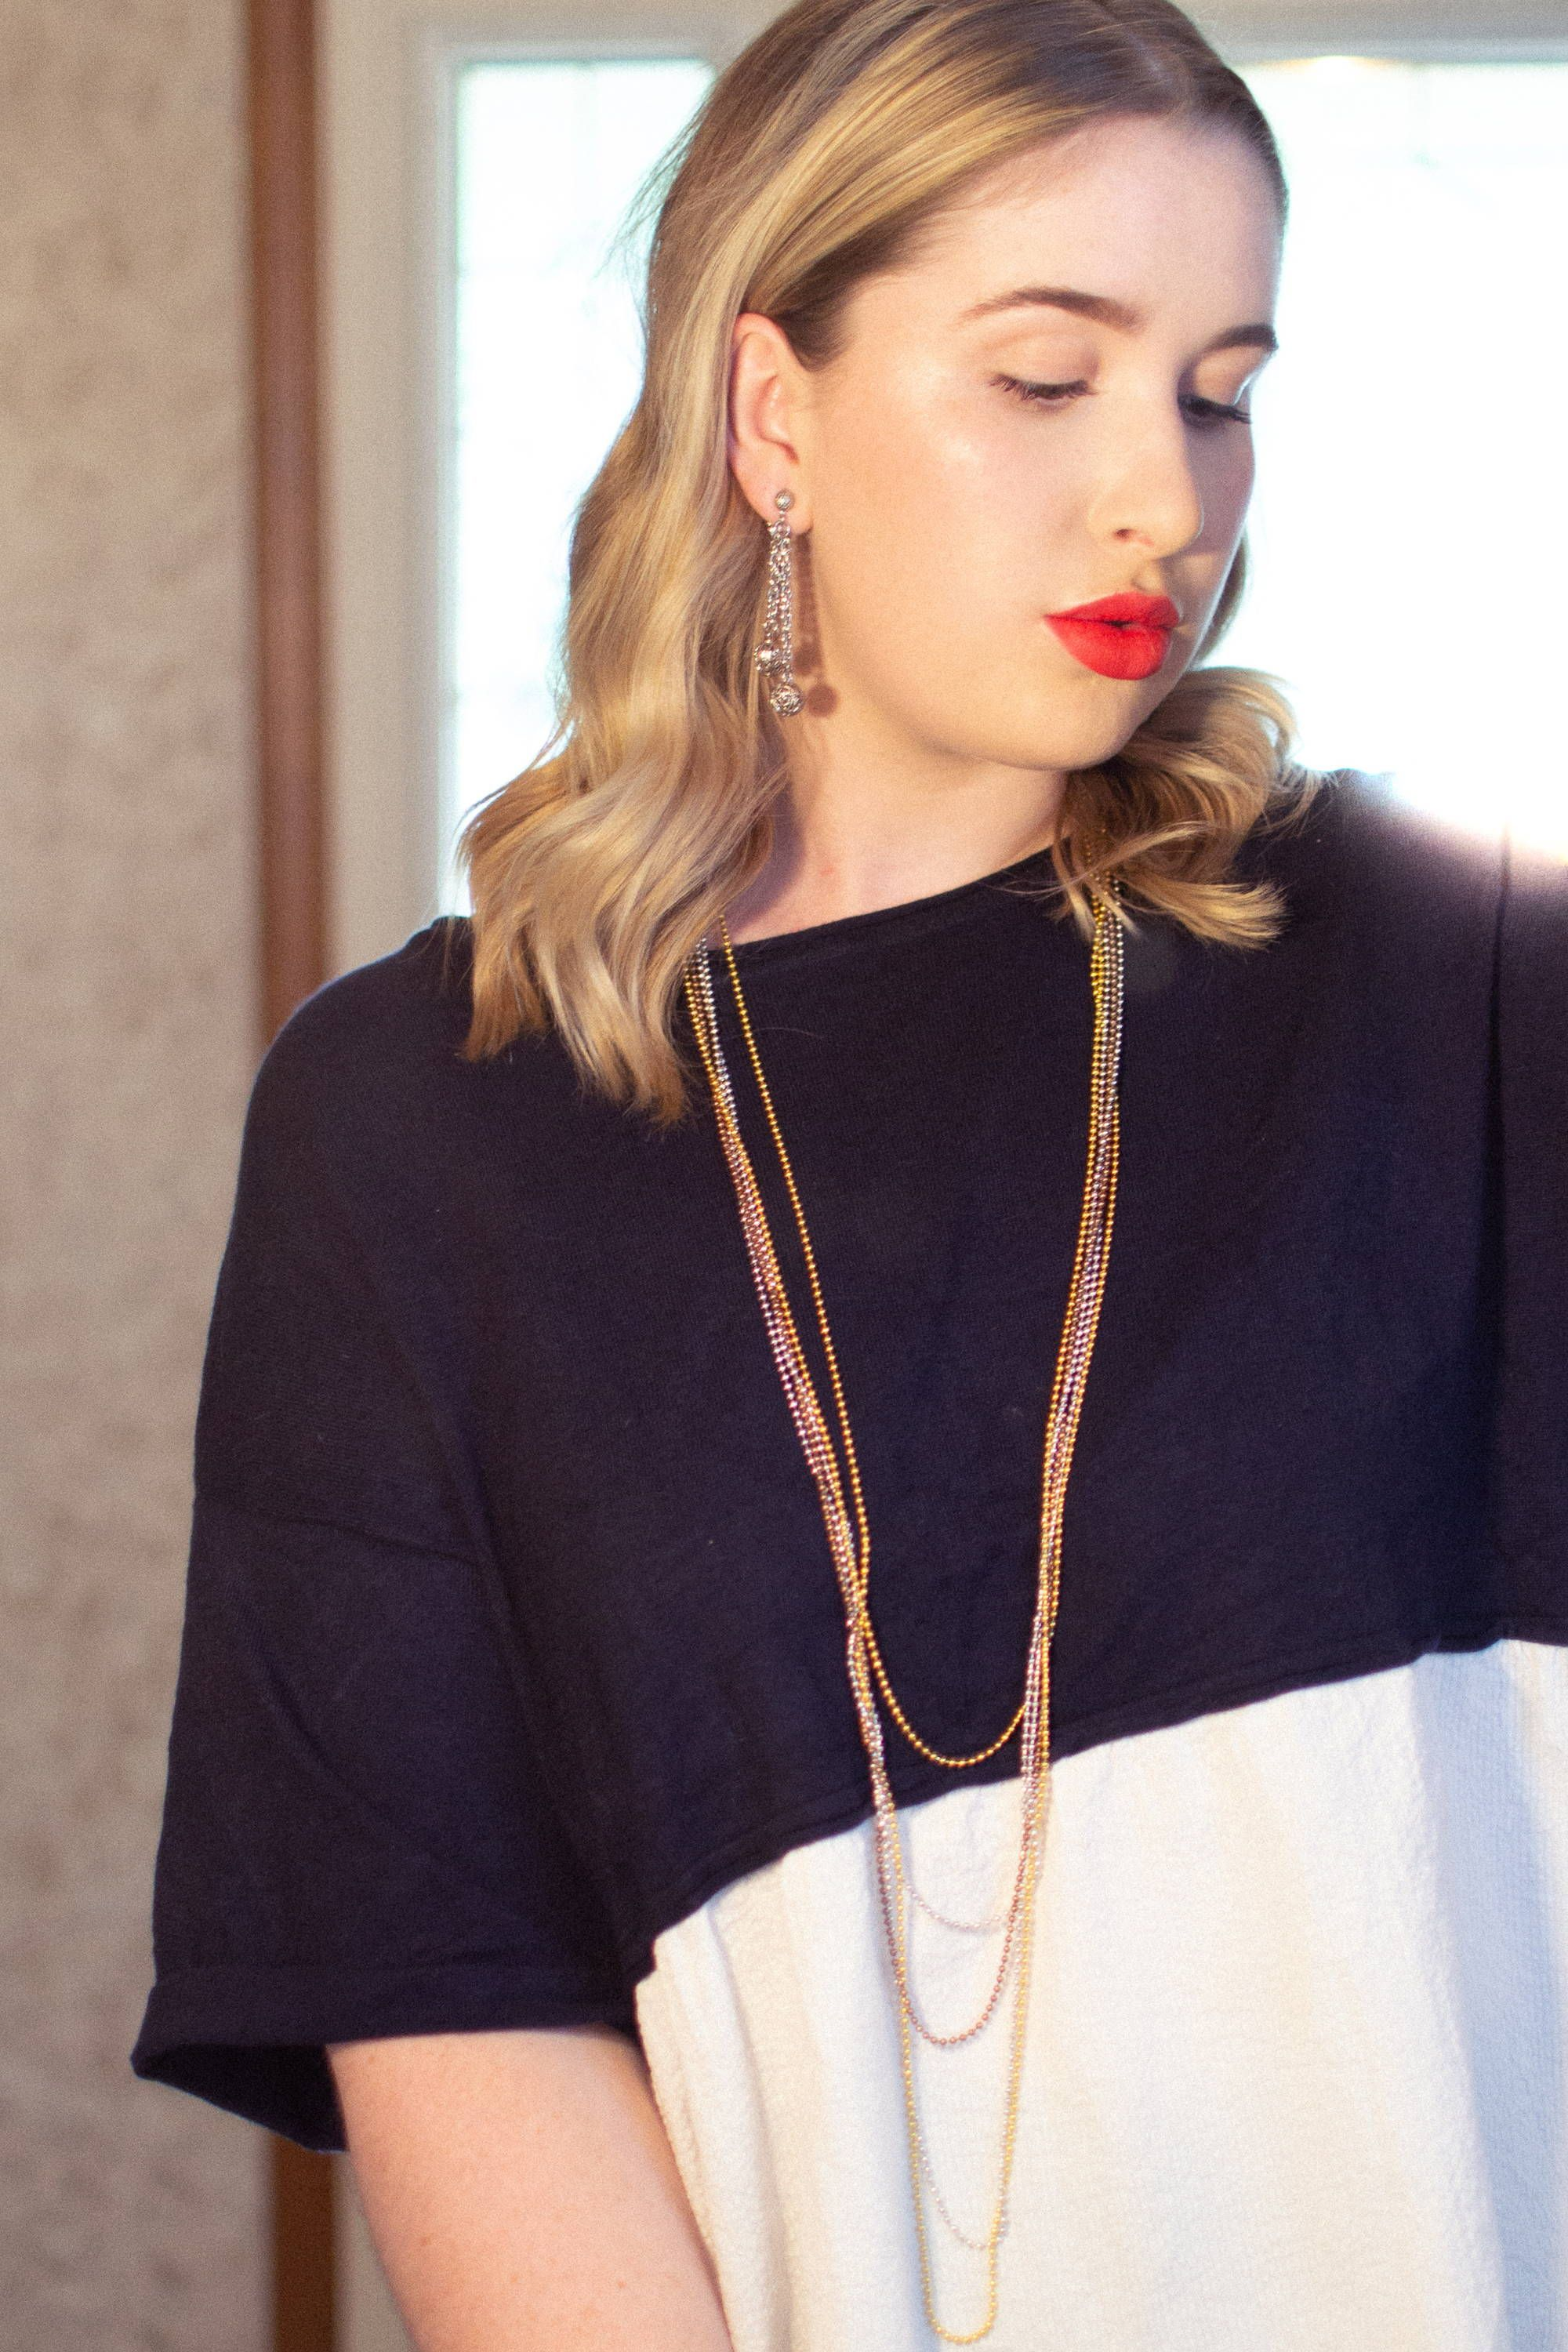 Pin On Styling Ideas Fashion Inspiration Styling Inspiration How To Wear Jewelry